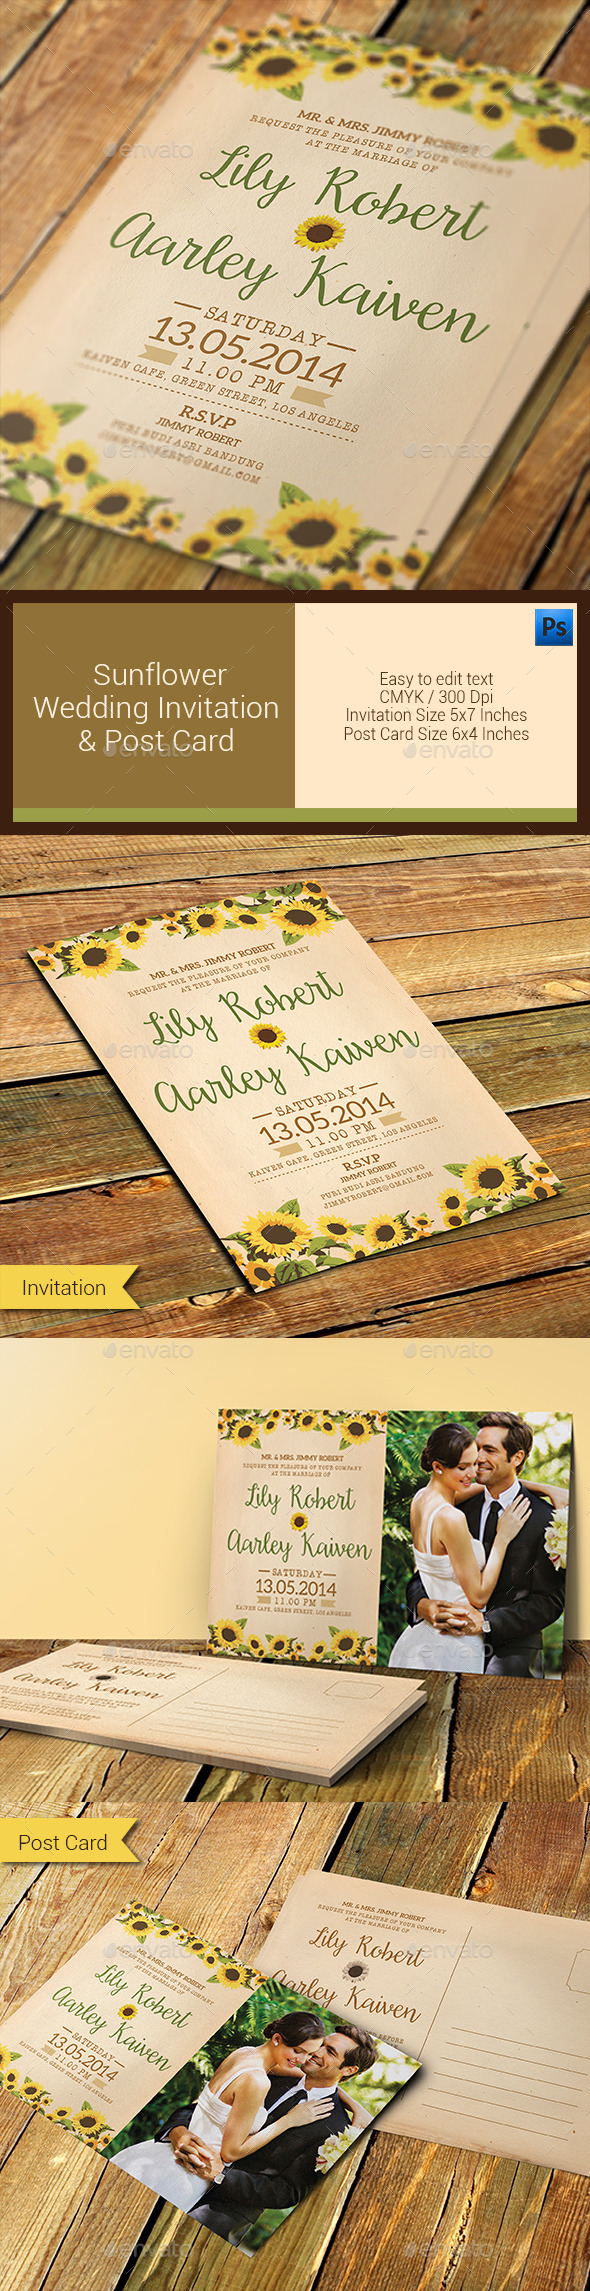 GraphicRiver Sunflower Wedding Invitation & Post Card 11296659